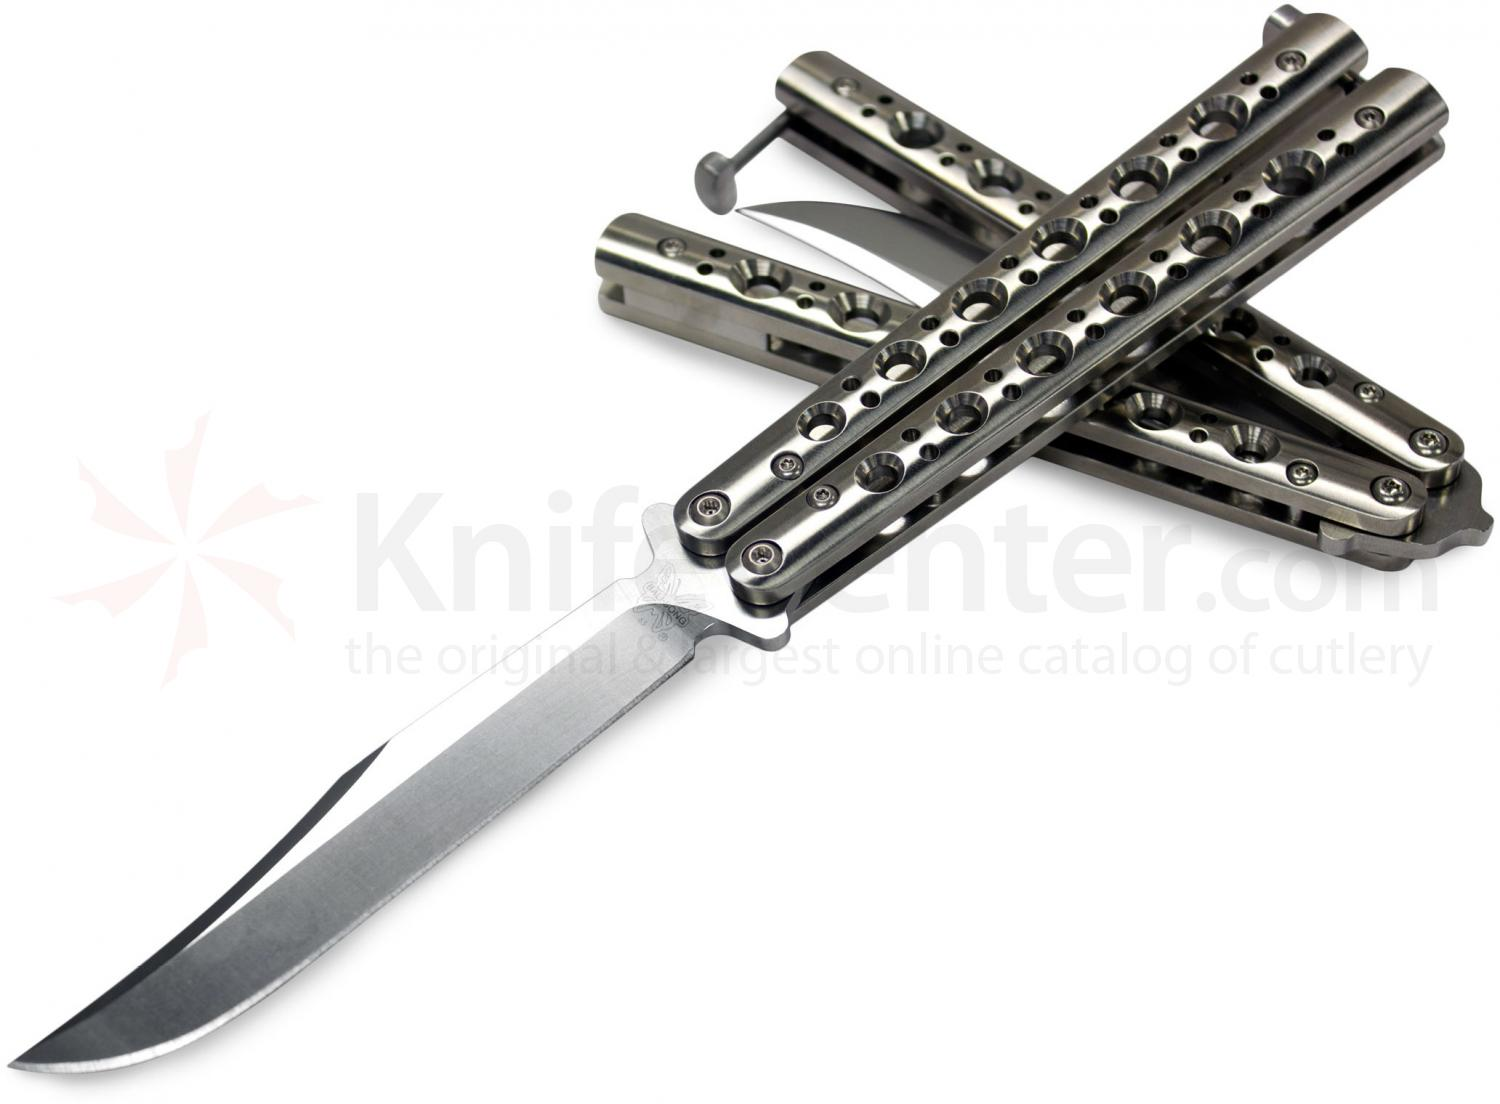 Benchmade 63 Balisong Butterfly 4.25 inch Bowie Blade, Stainless Steel Handles, T-Latch